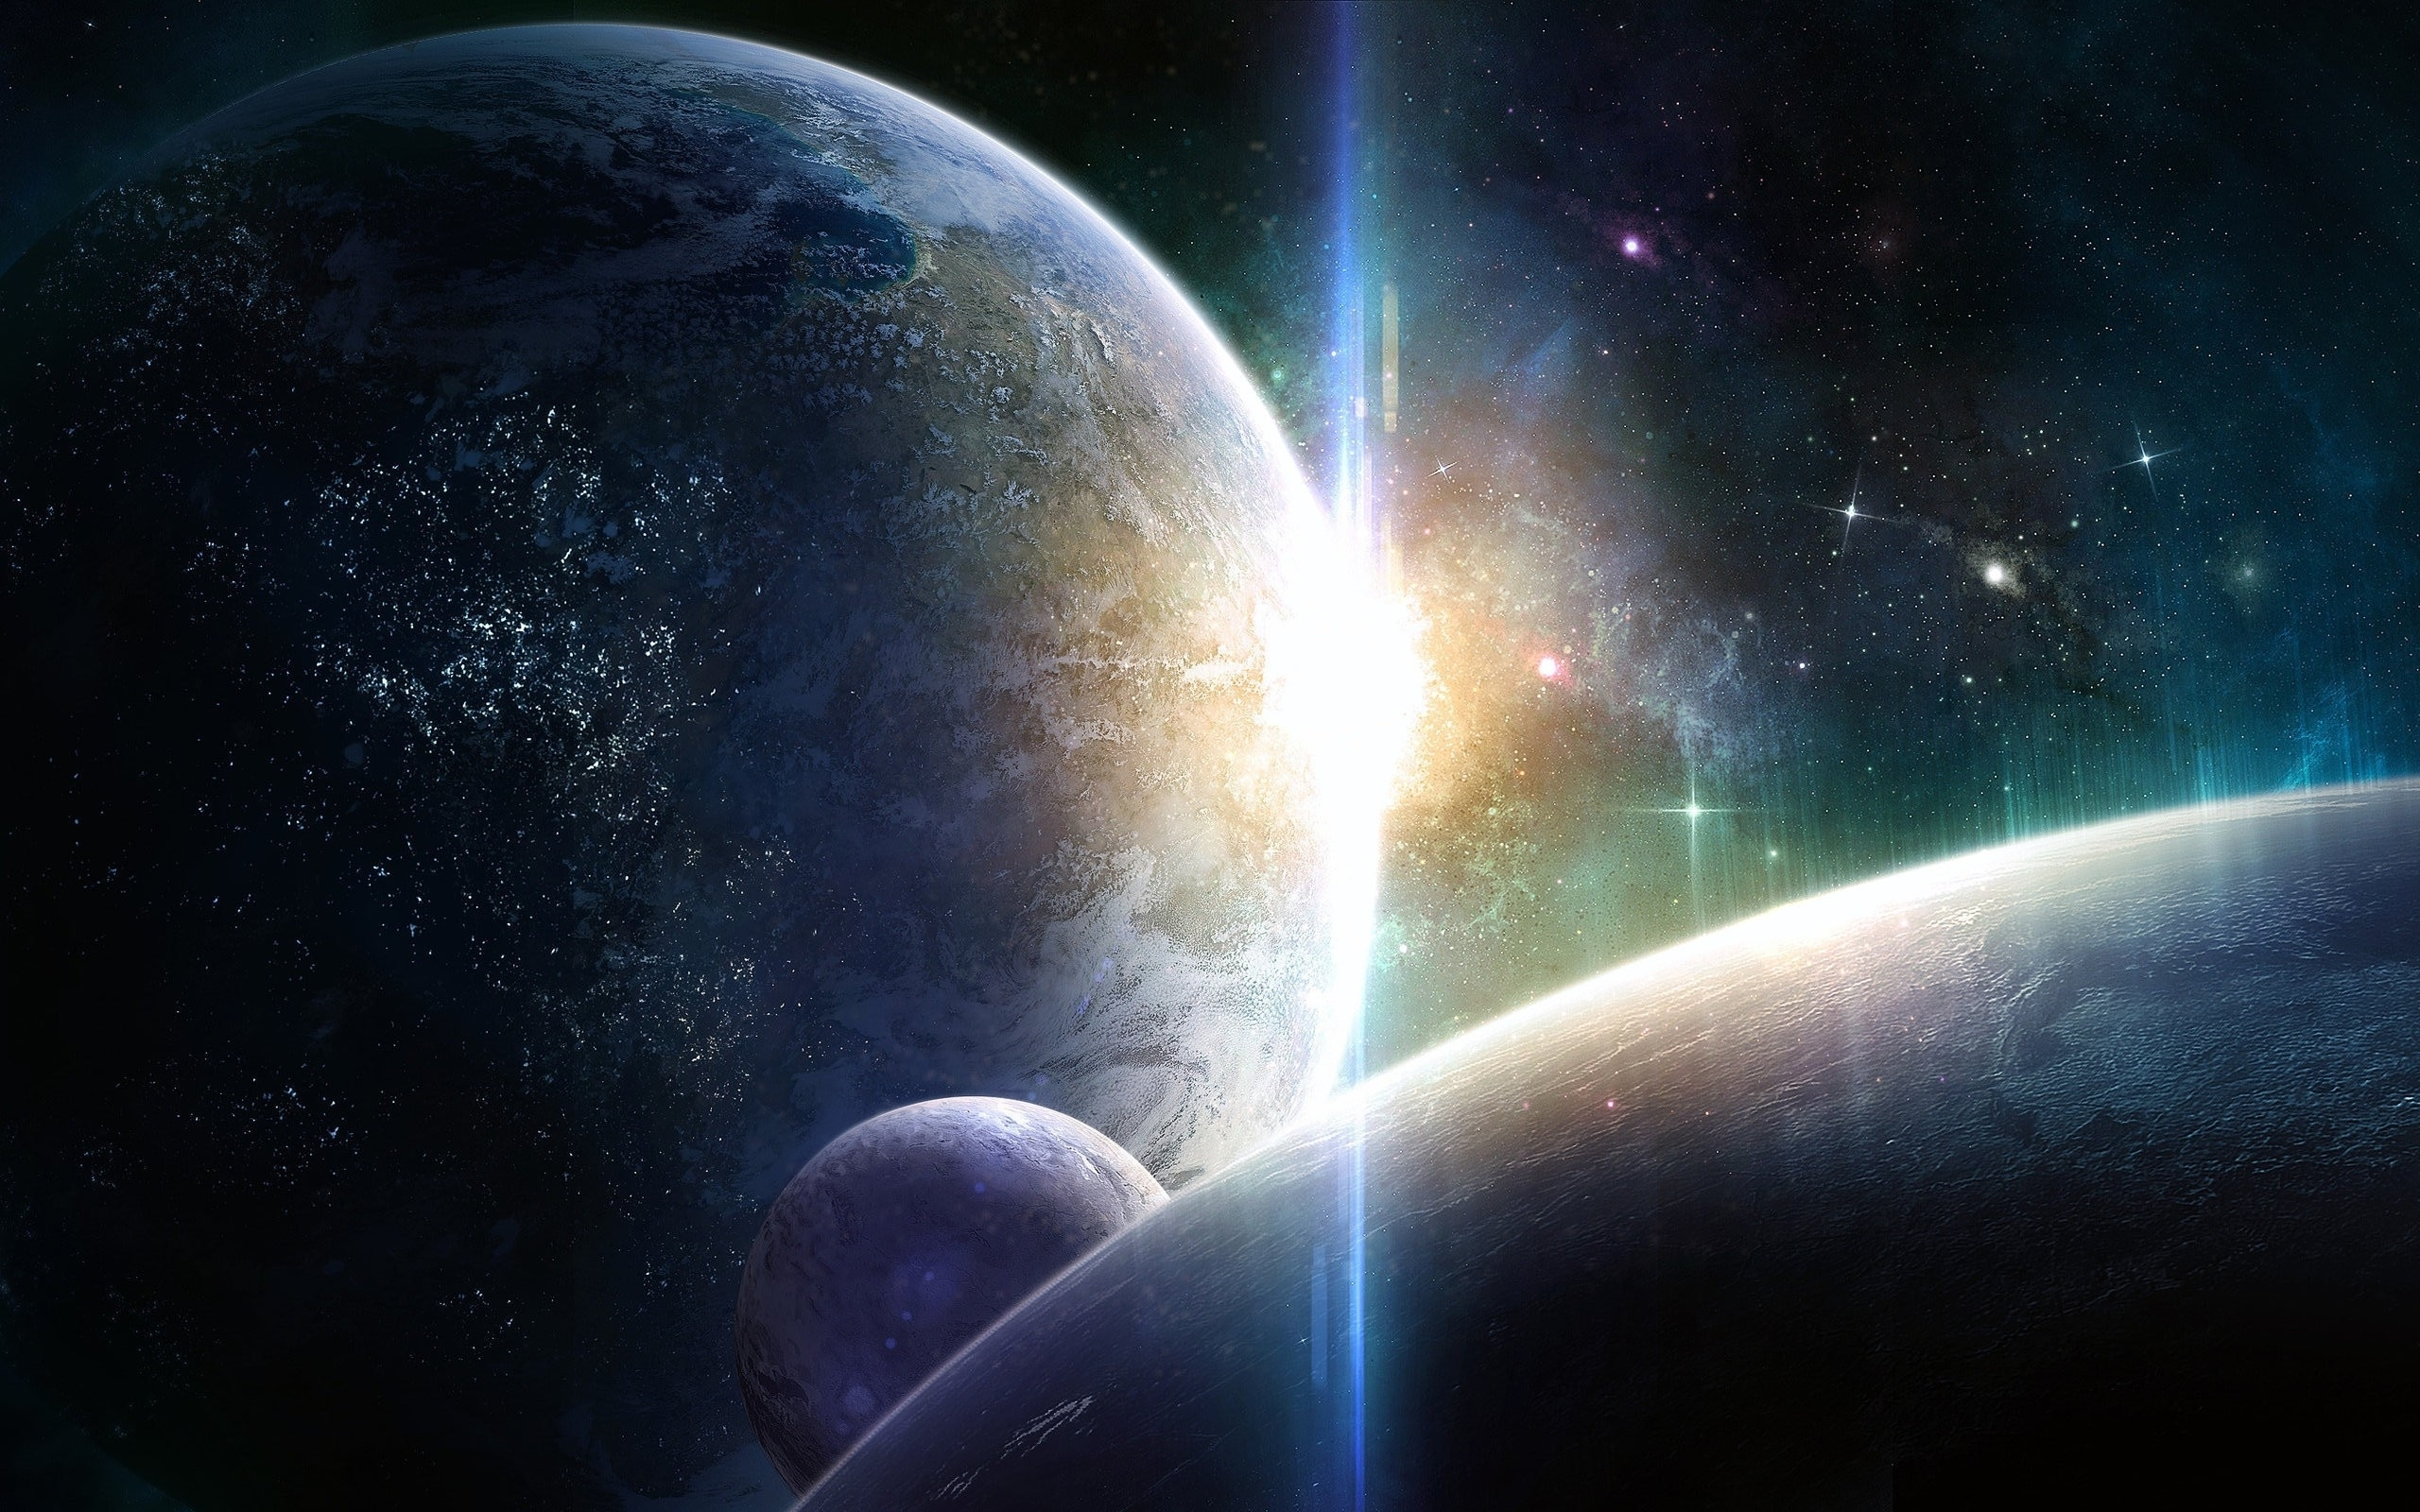 wallpaper light outer space stars planets categories space views 286 2560x1600